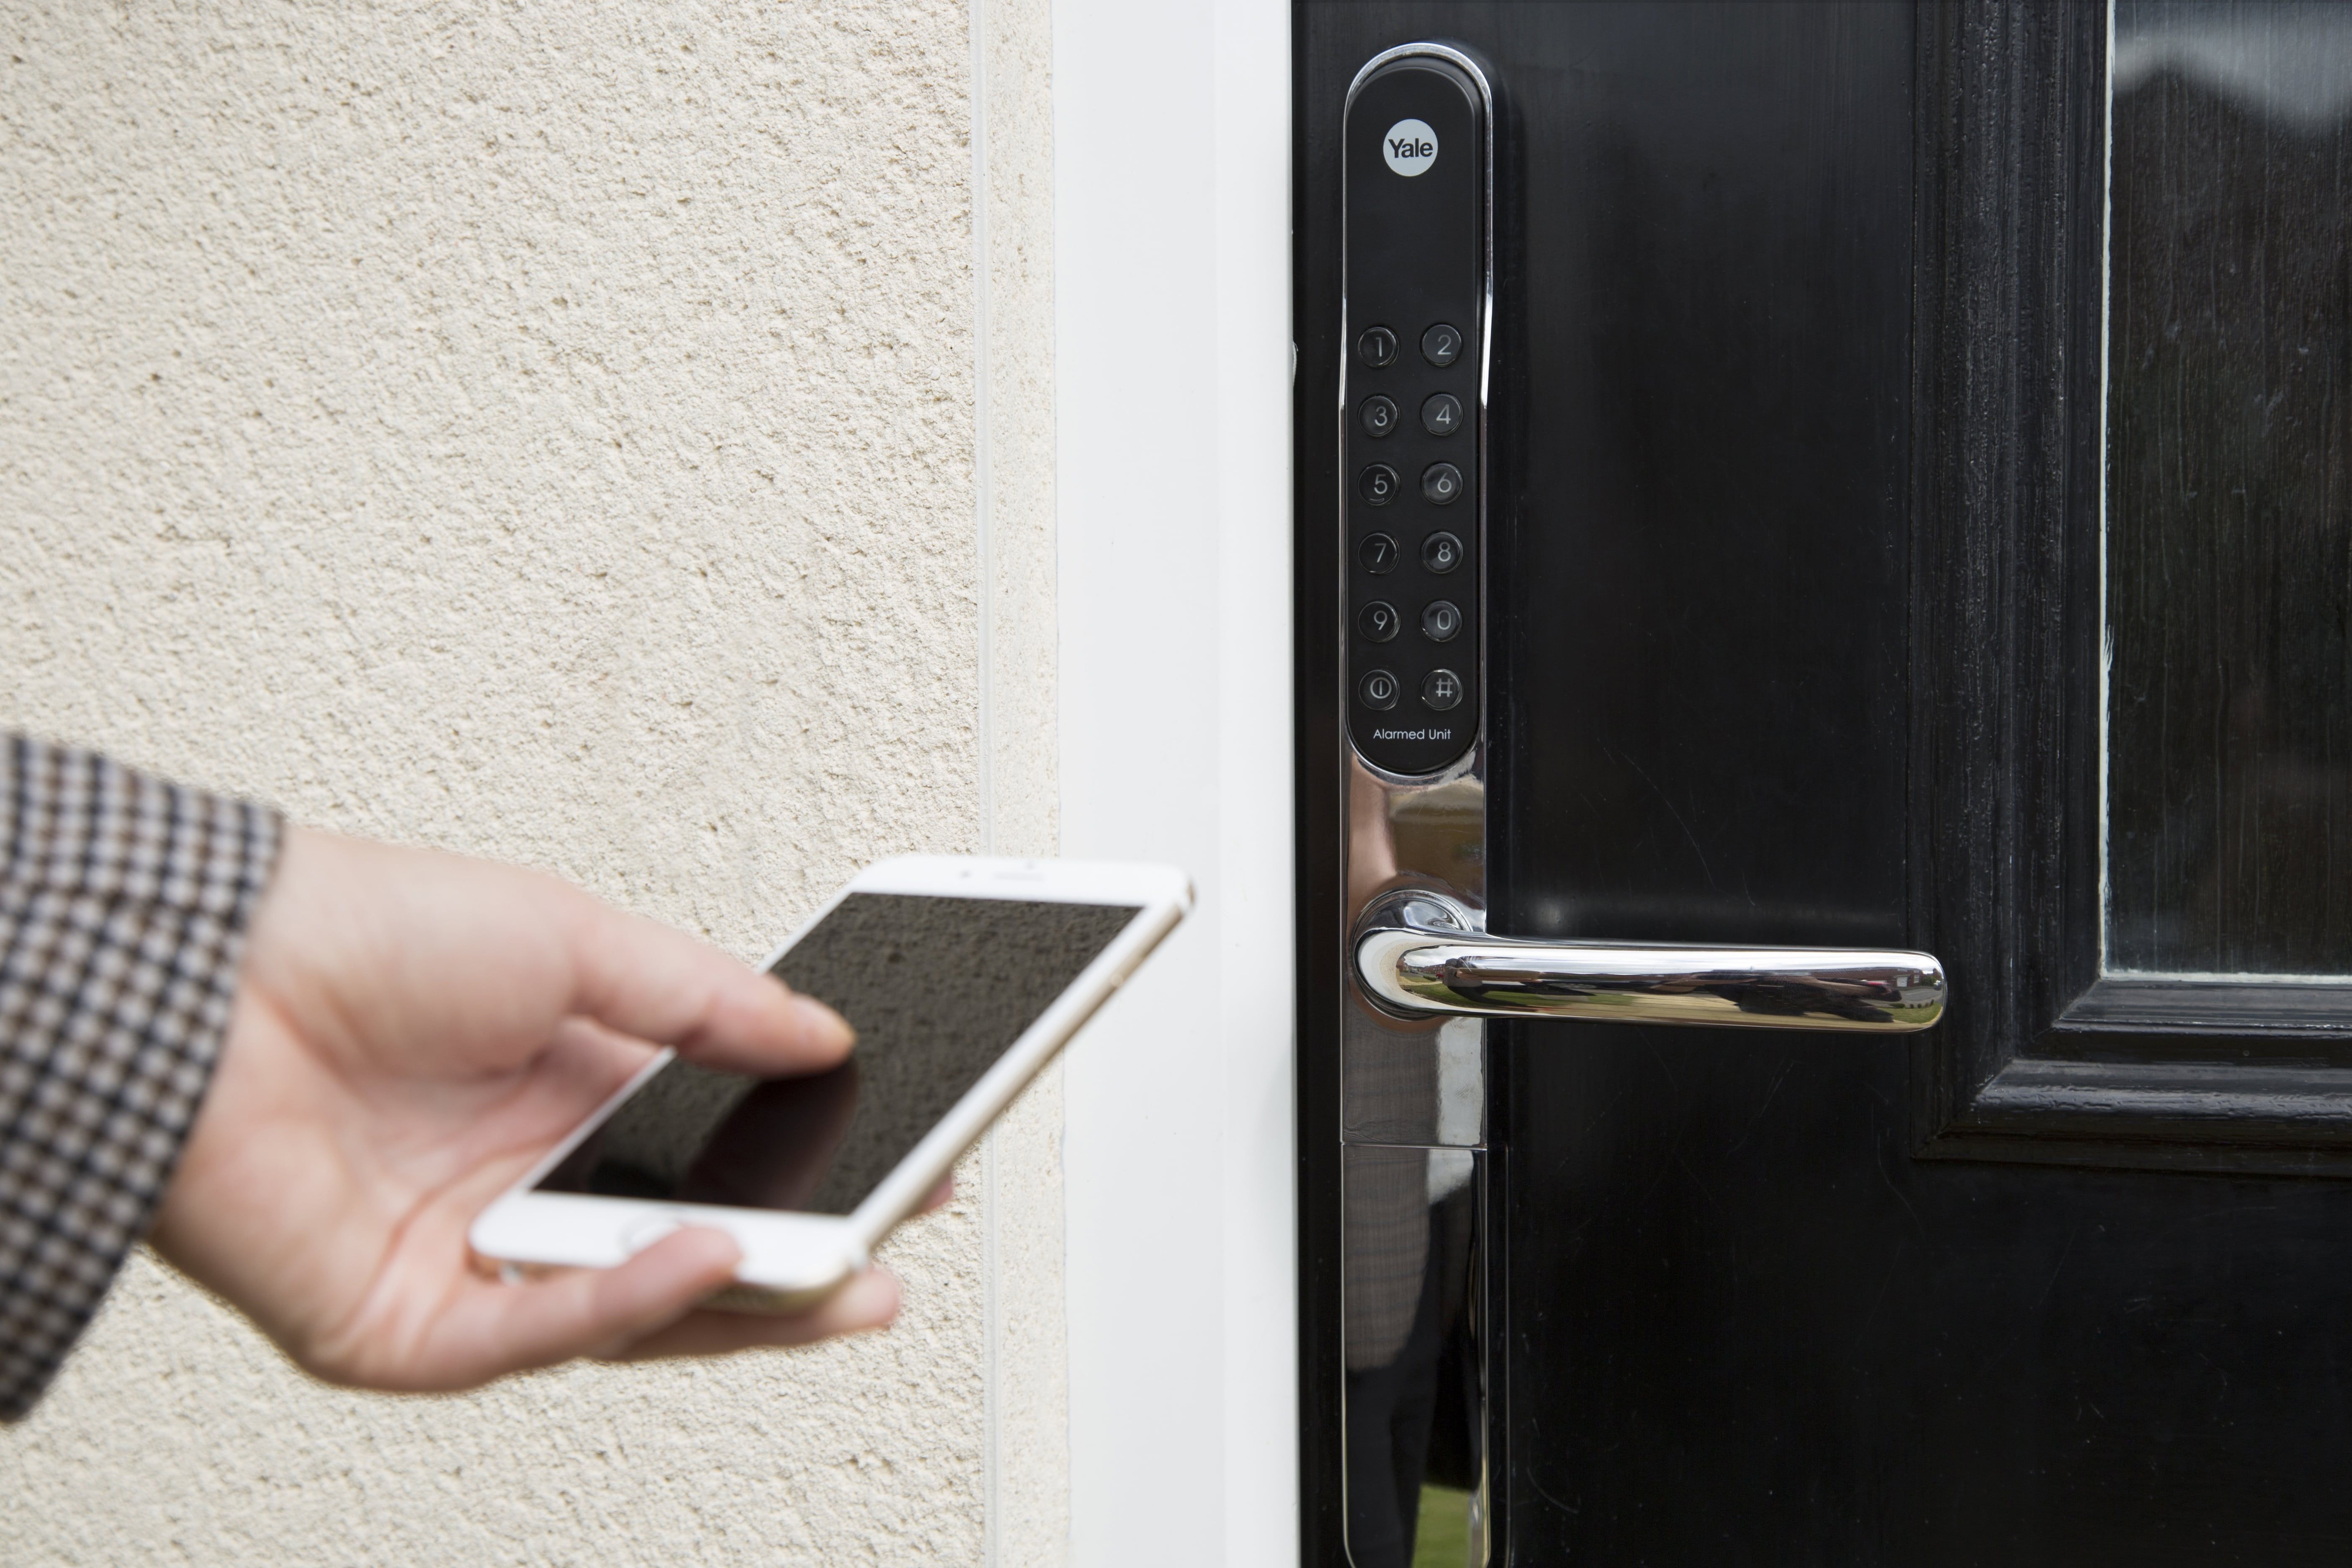 the yale keyfree connected with zwave module is the latest in smart door lock